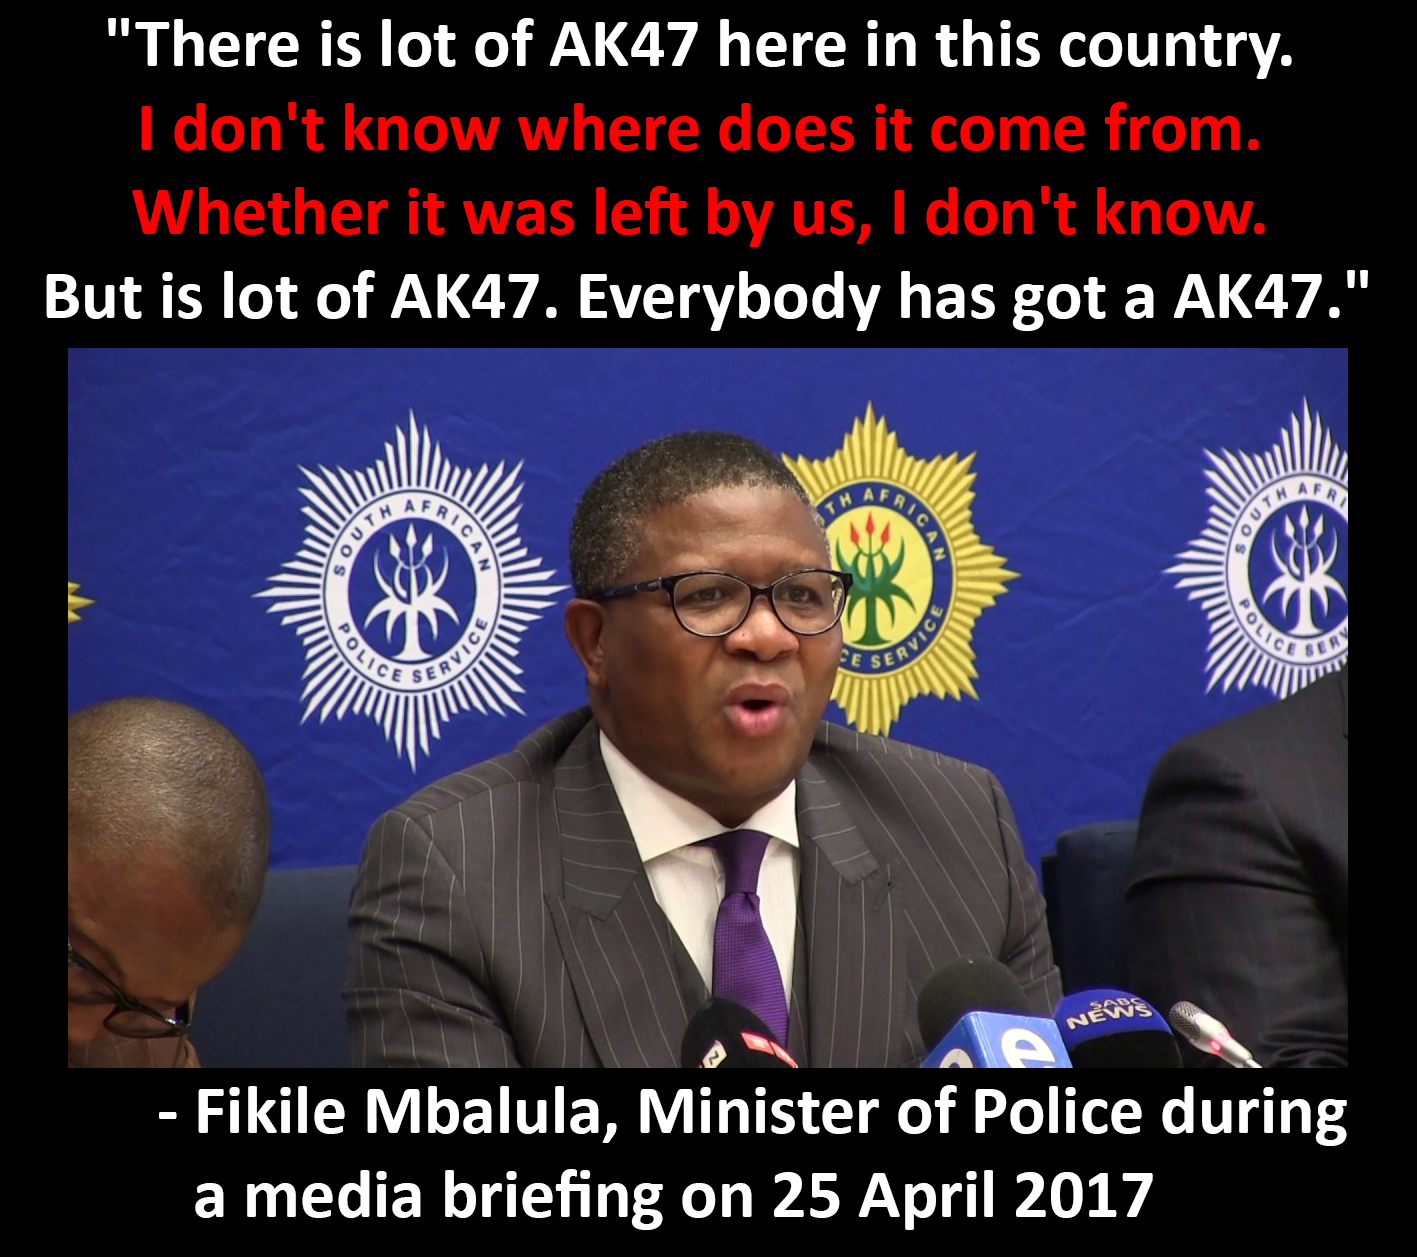 Minister Mbalula's Imprudent War on Guns